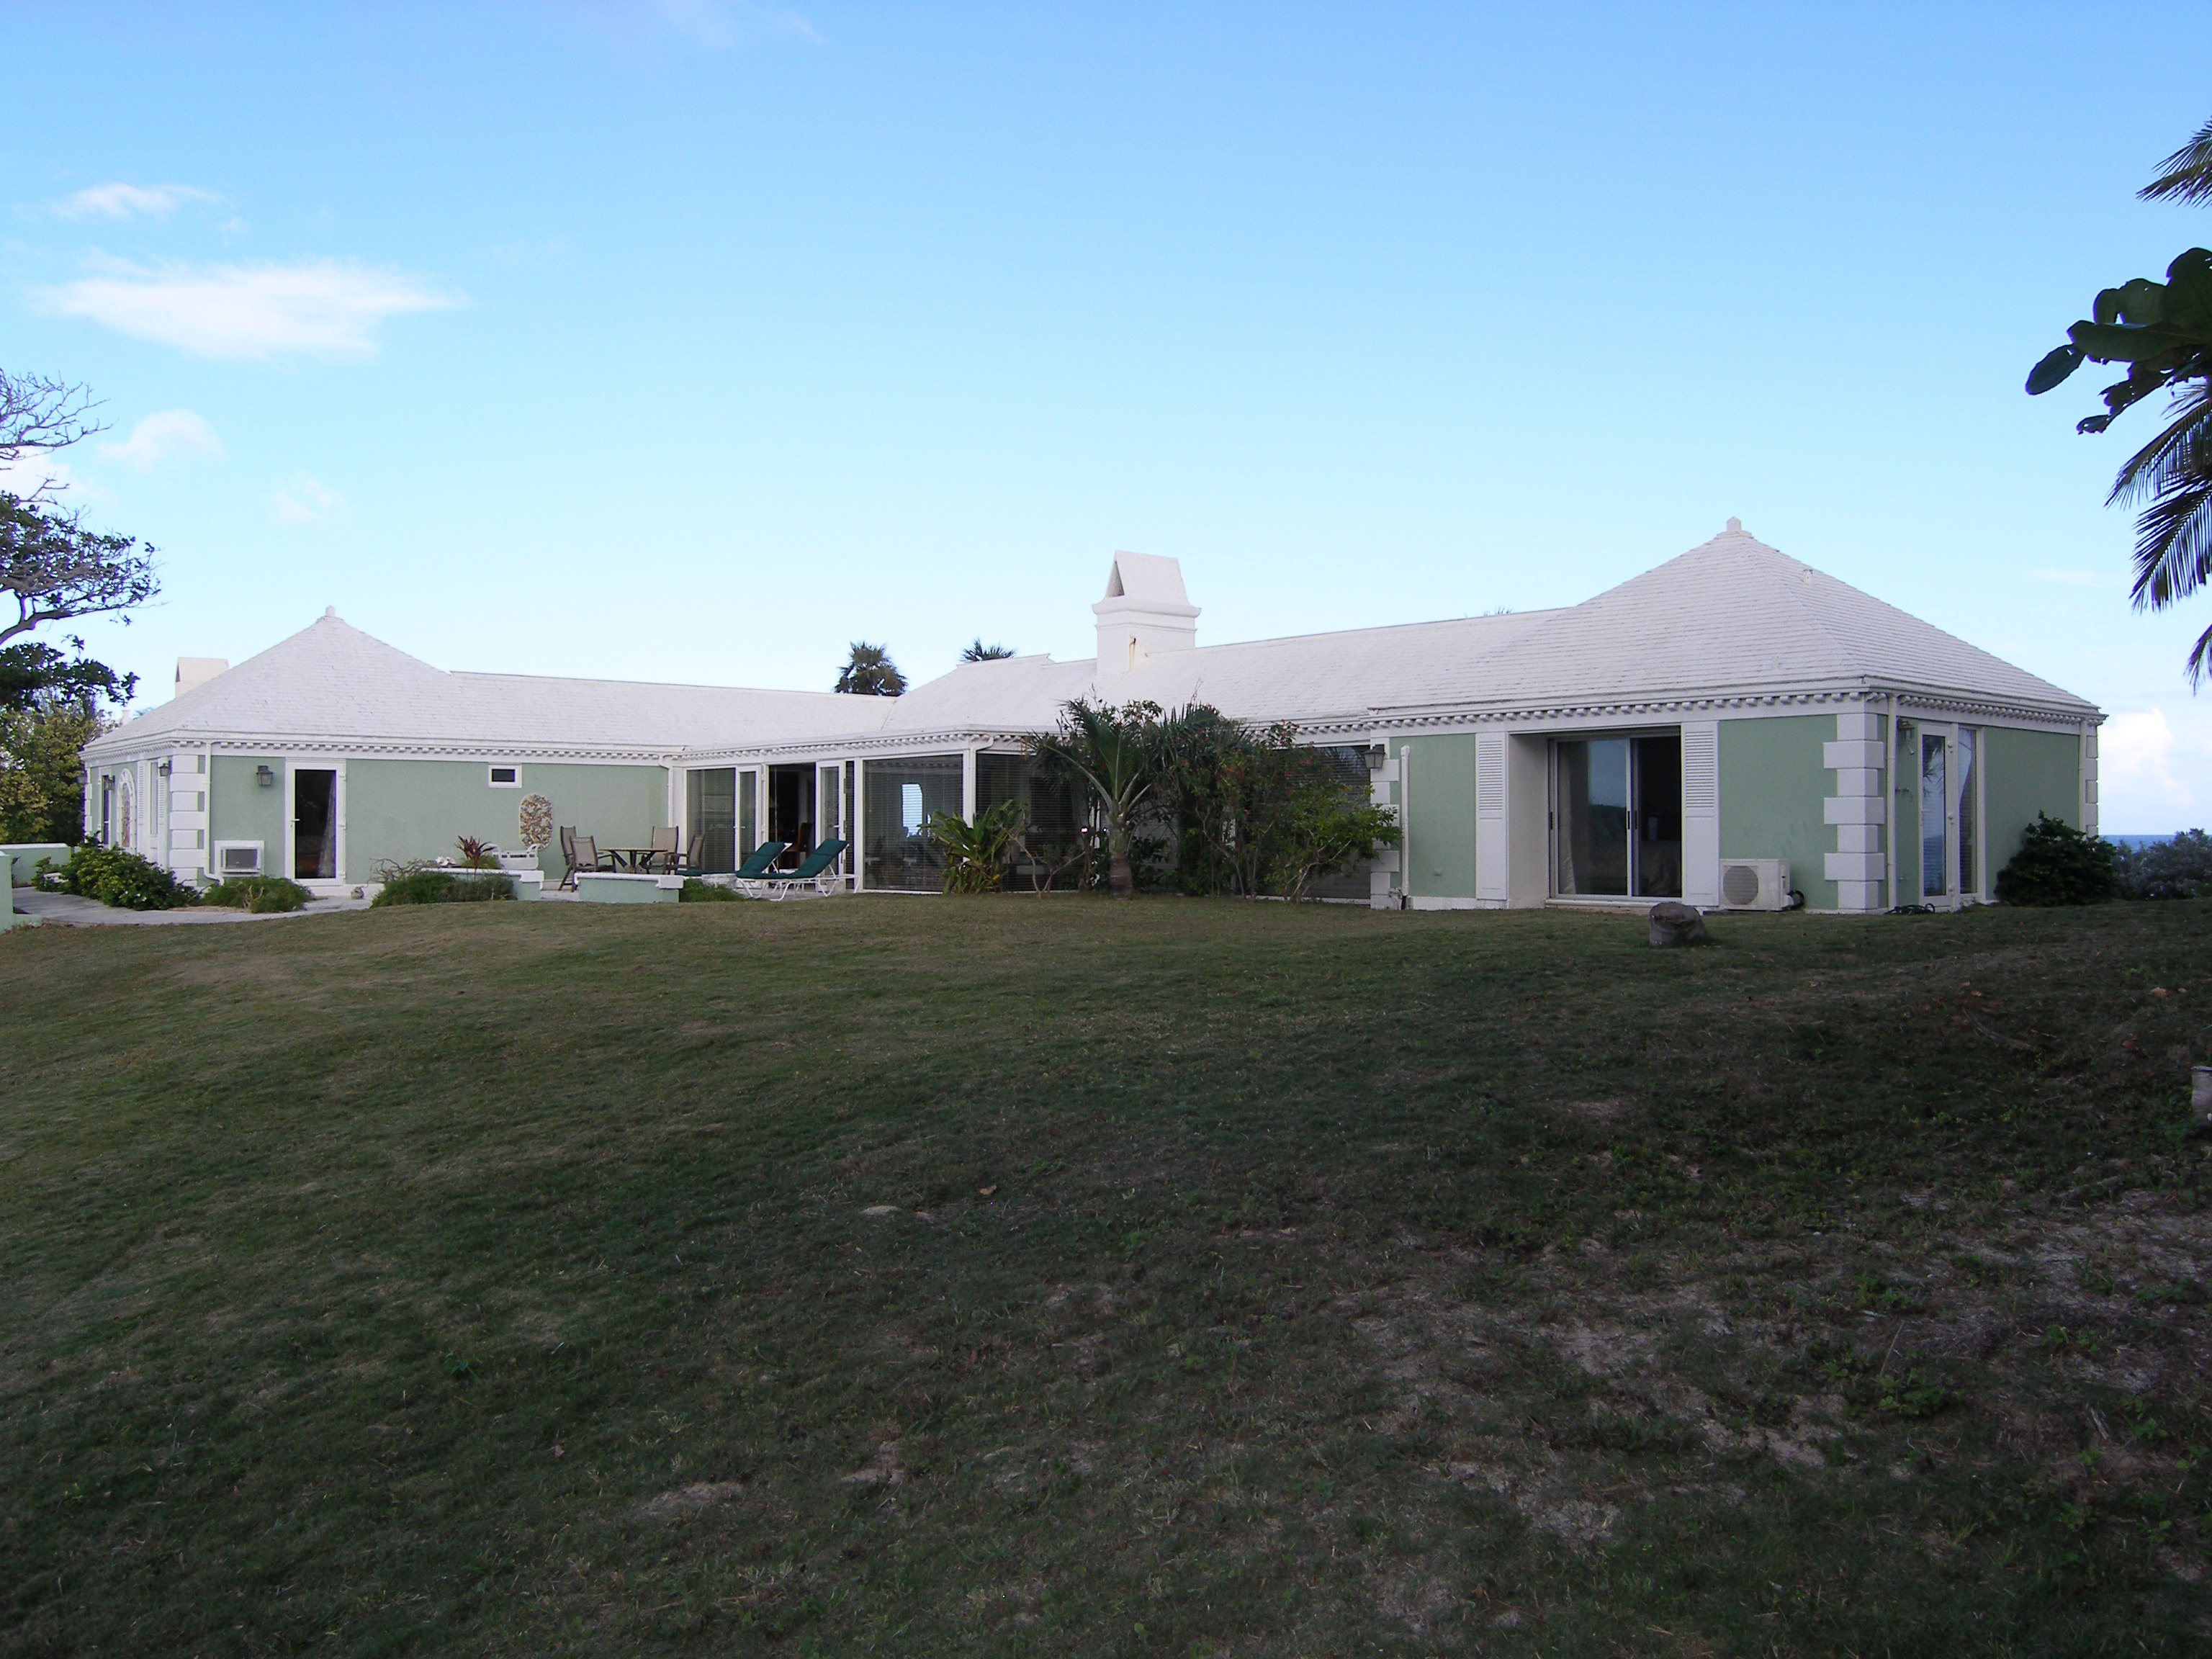 Single Family Home for Sale at Vista del Mar Cotton Bay, Rock Sound, Eleuthera Bahamas